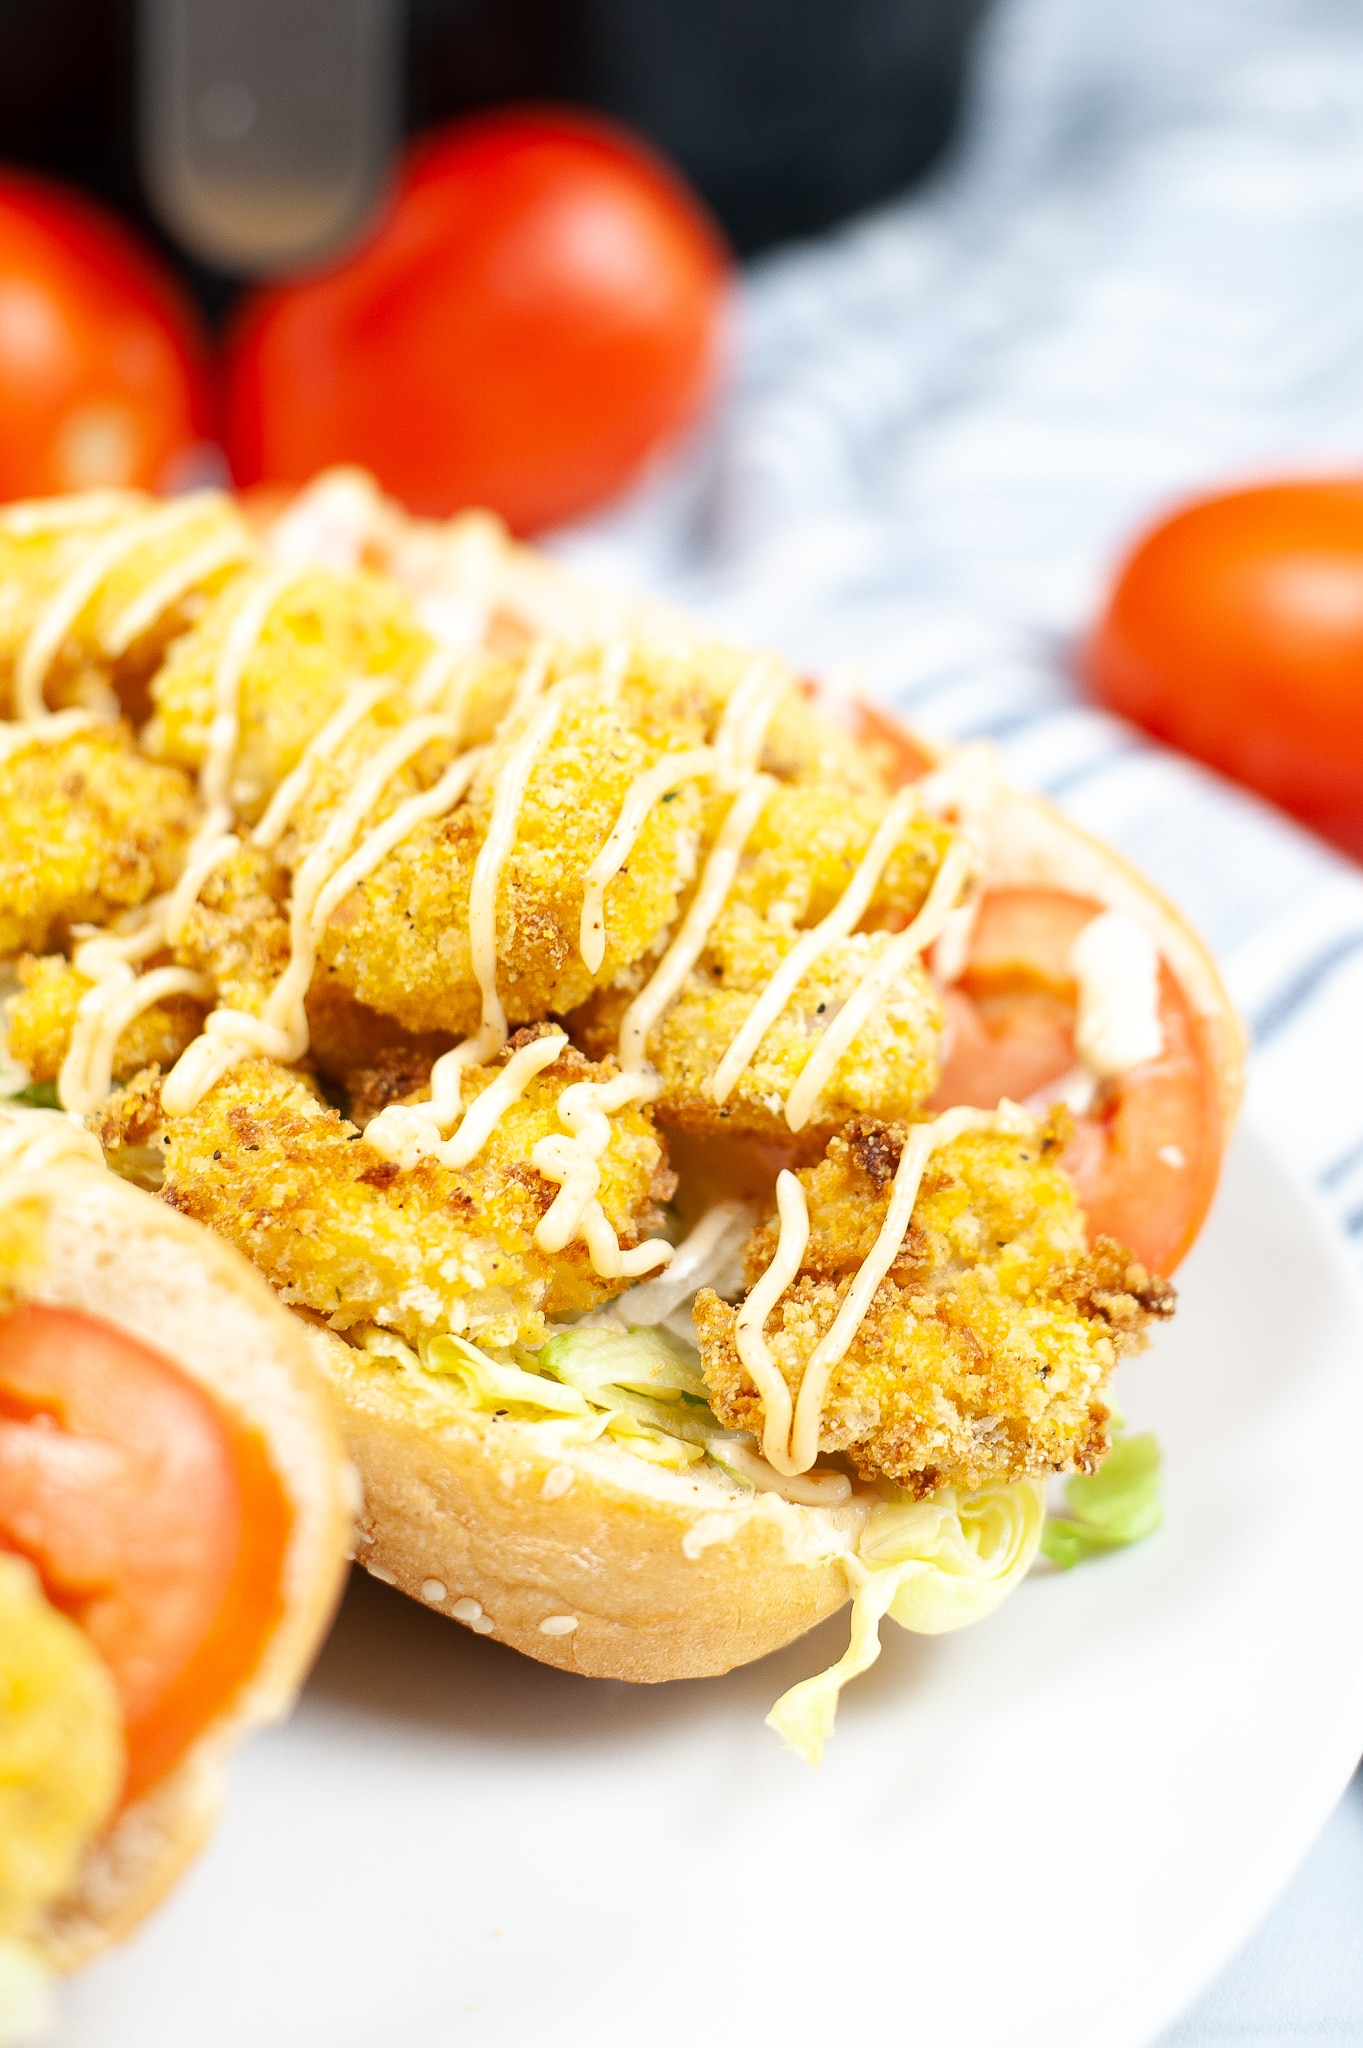 cornmeal crusted shrimp air fried, stacked on a hoagie bun with lettuce, tomato and mayonnaise